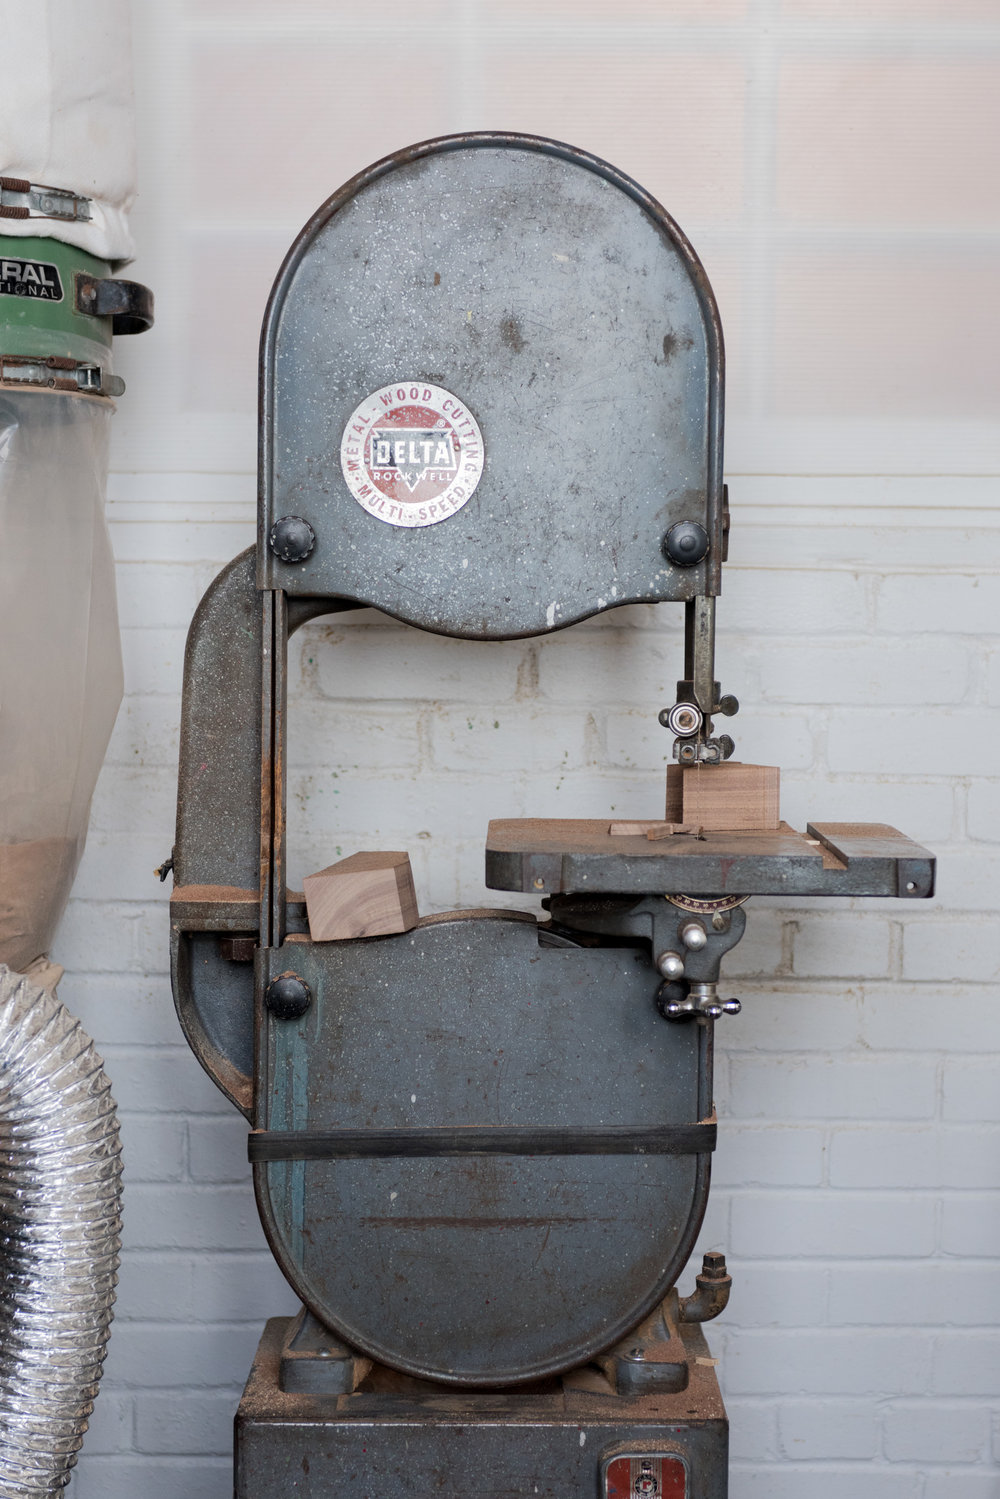 My trusty old band saw.